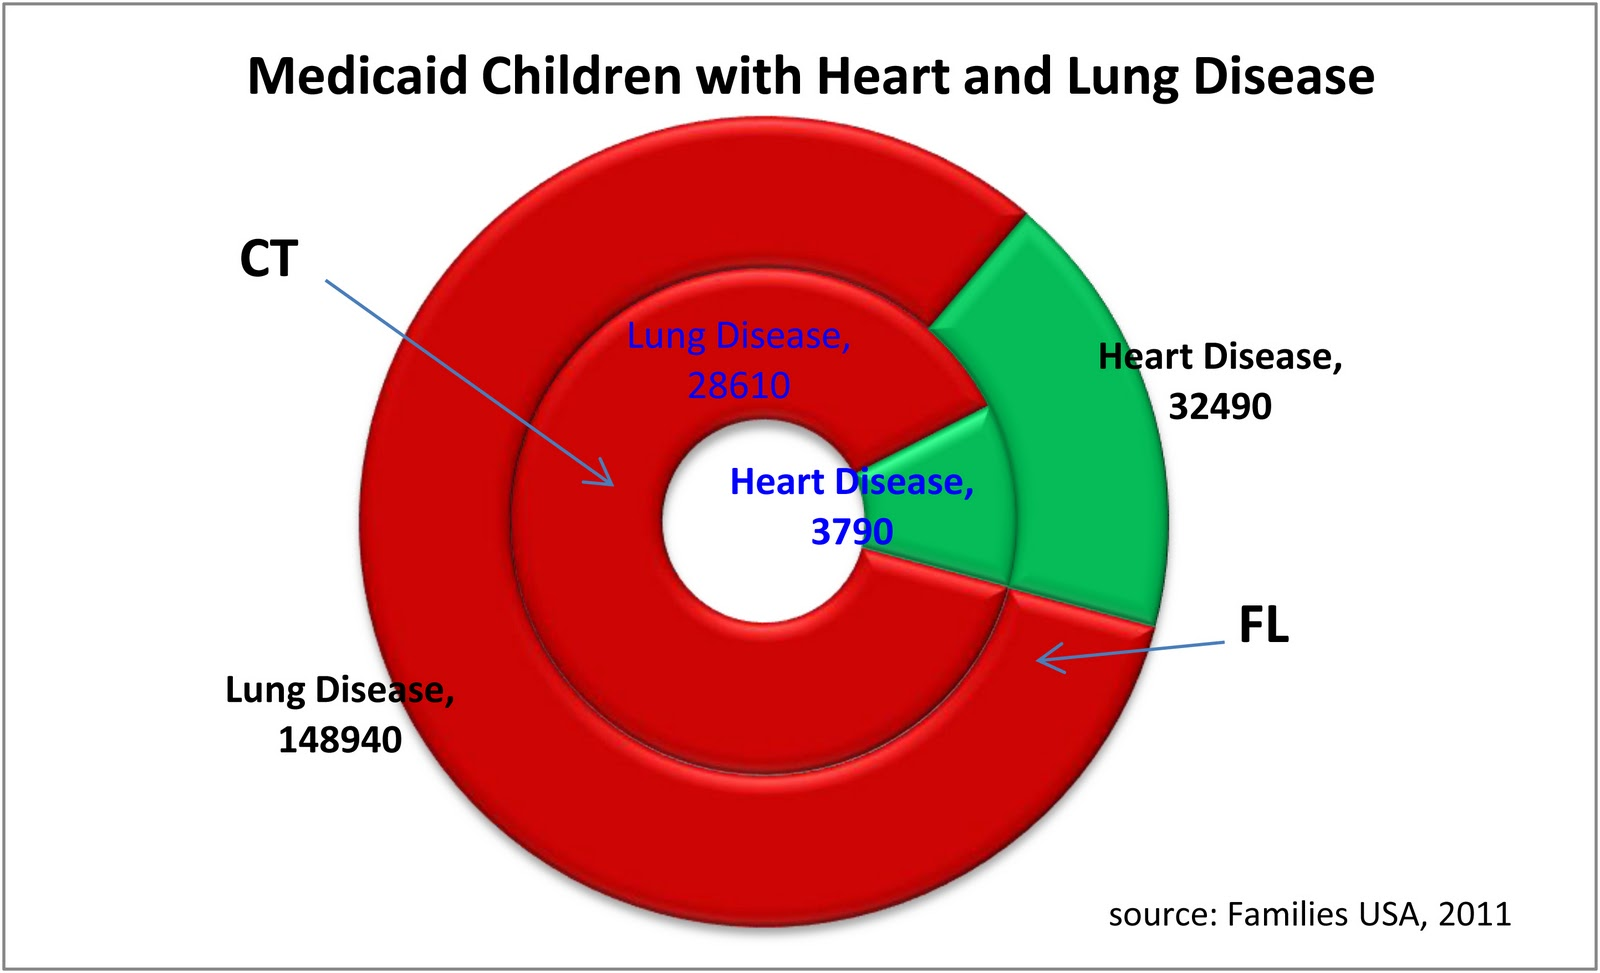 heart and lung diseases Tachycardia caused by heart or lung disease often is accompanied by chest pain or shortness of breath or lightheadedness diagnosis your doctor will ask you to describe your symptoms he or she will review your personal medical history and potential causes of tachycardia.